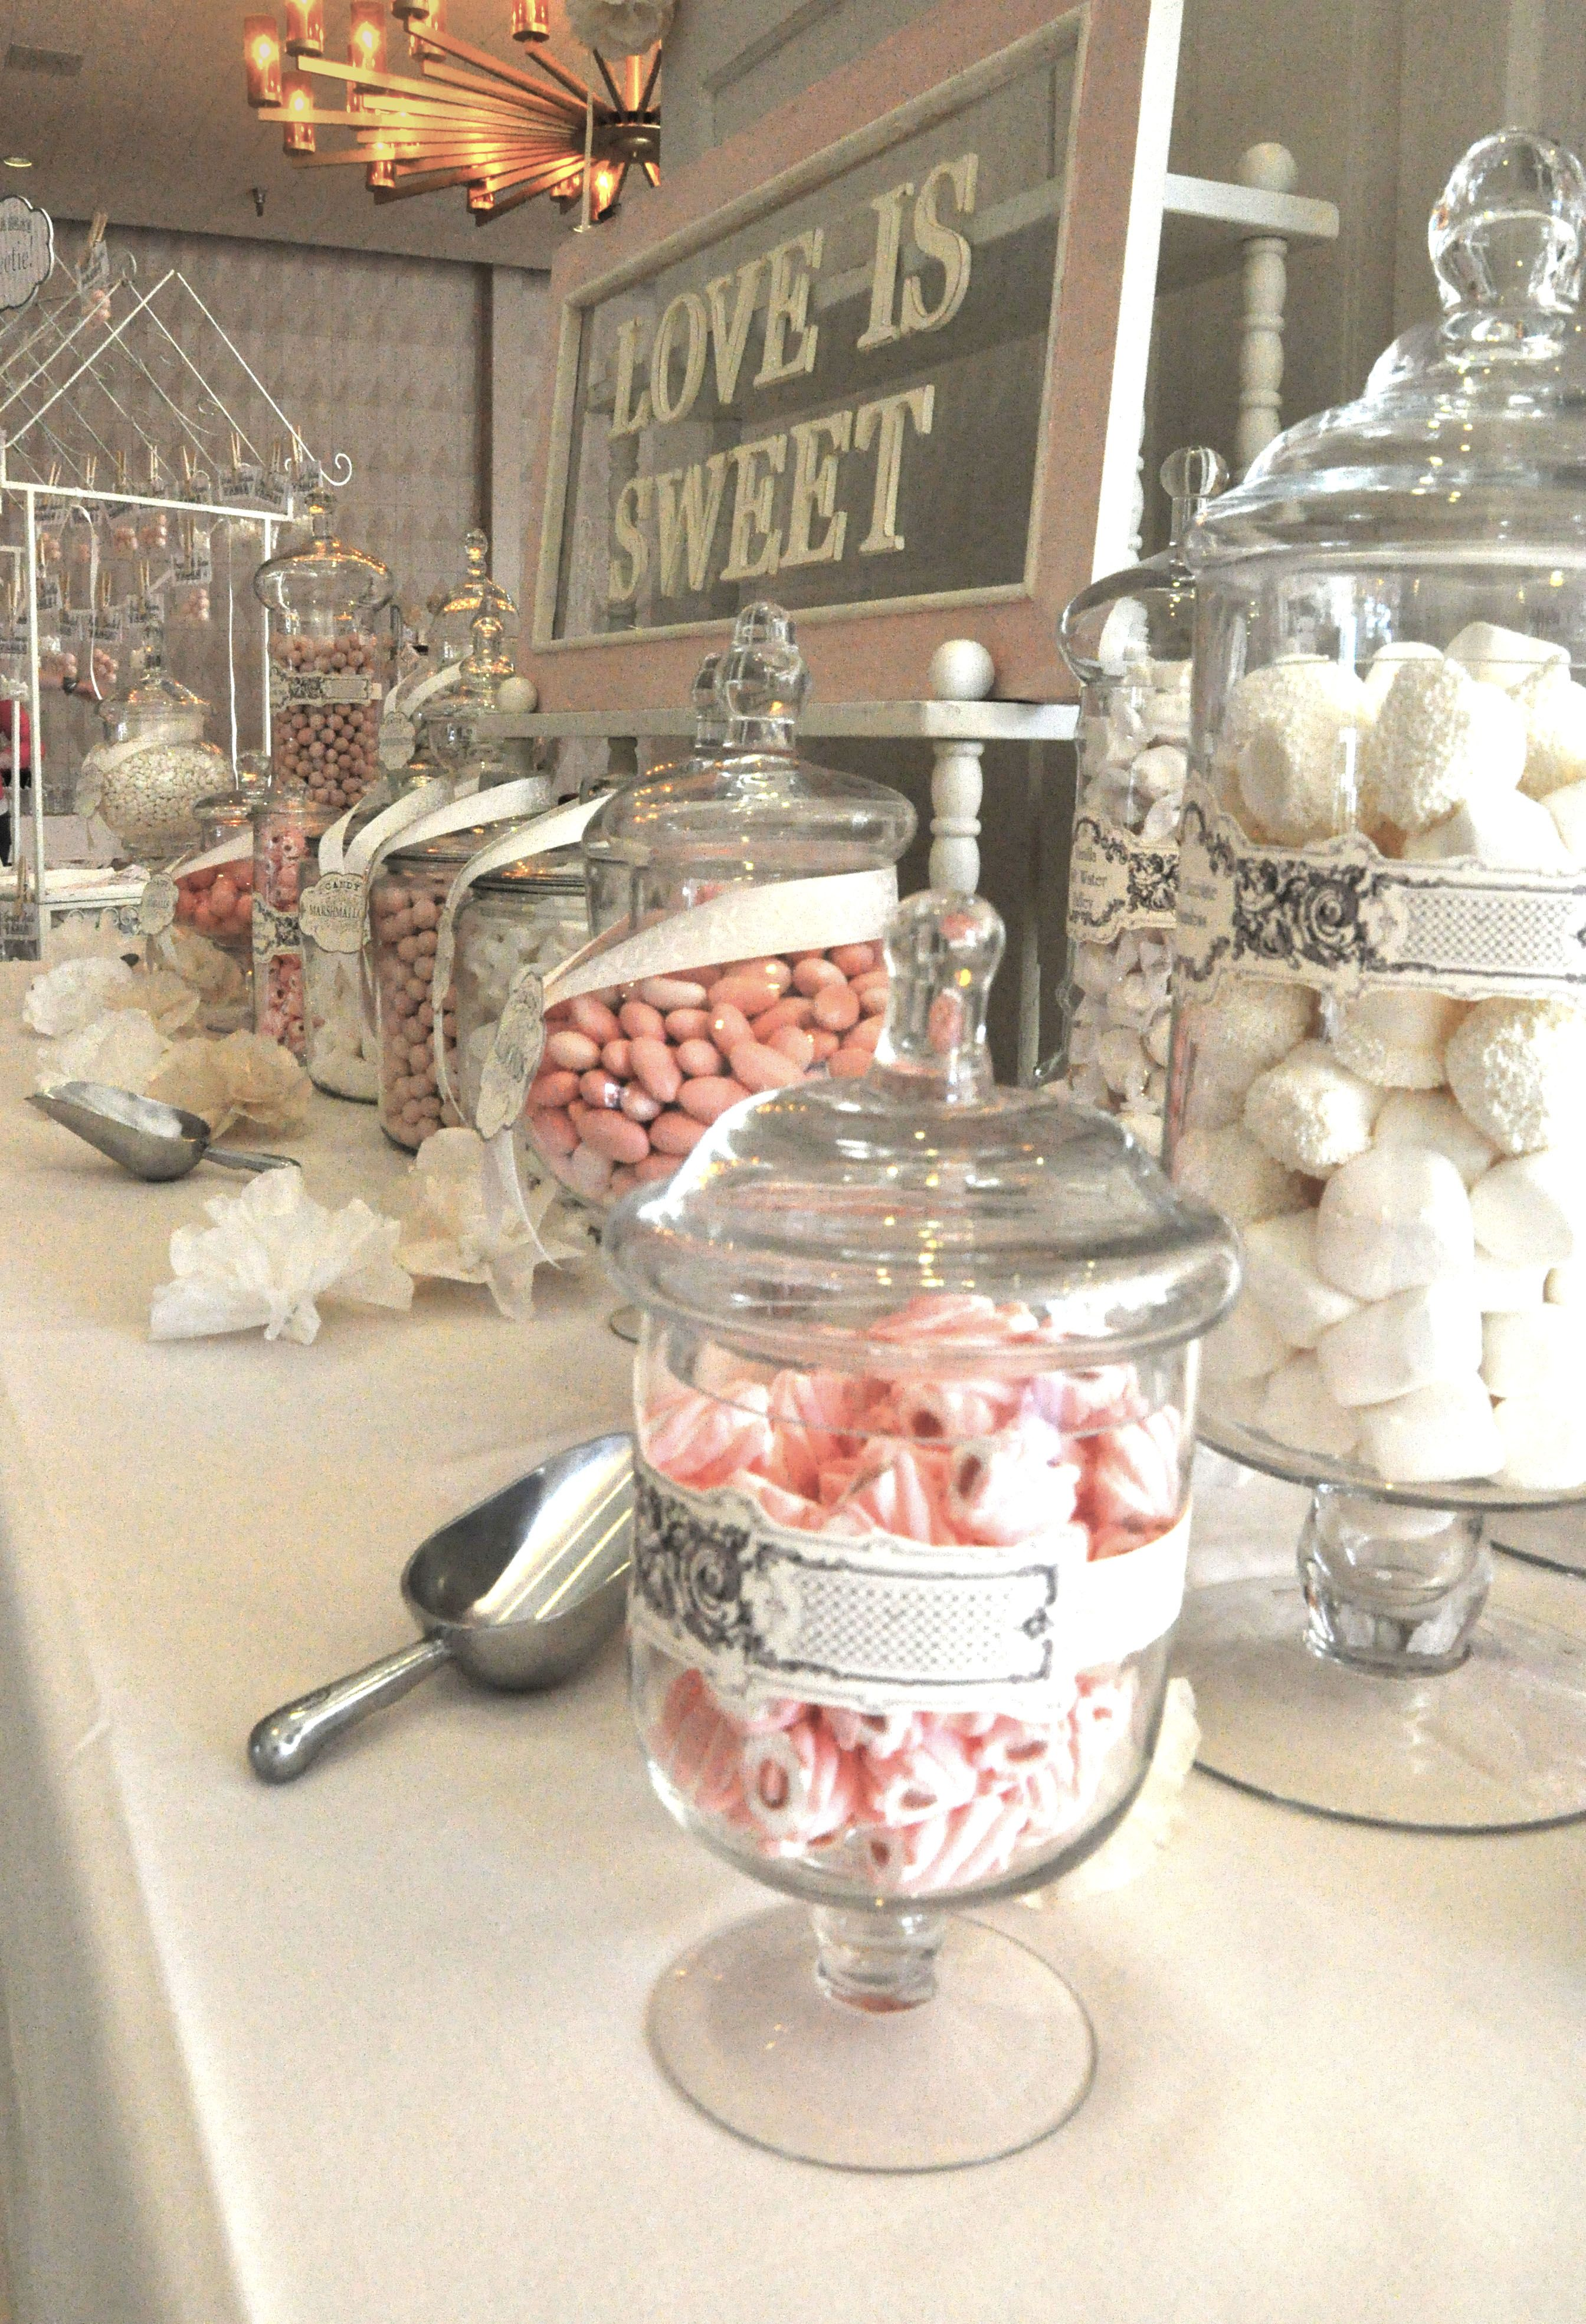 Pin By Jorden Collins On Candy Buffet Mistakes Candy Buffet Mistakes Wedding Candy Table Dessert Table